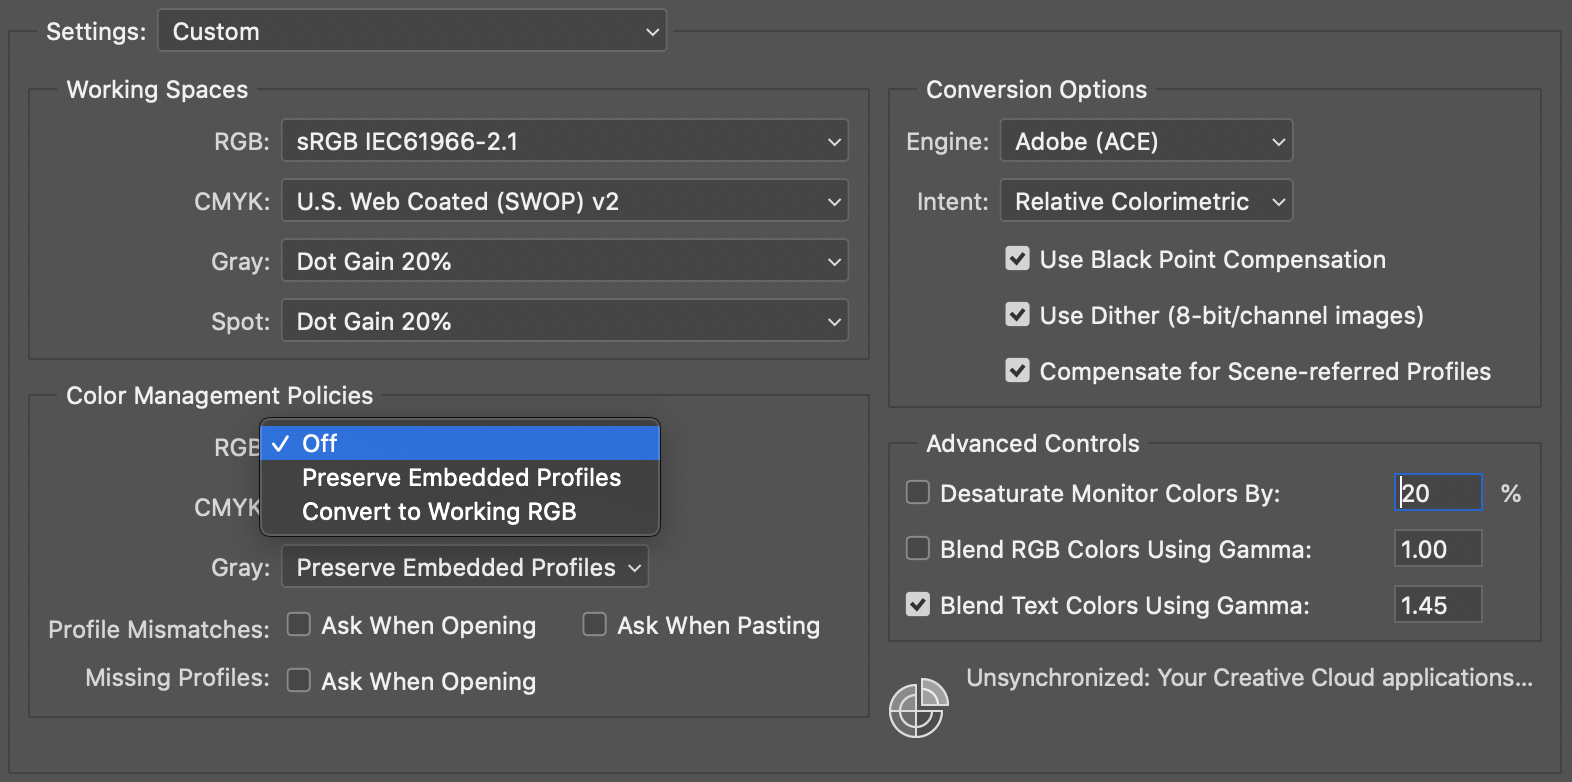 Color Settings menu in Adobe Photoshop and Illustrator